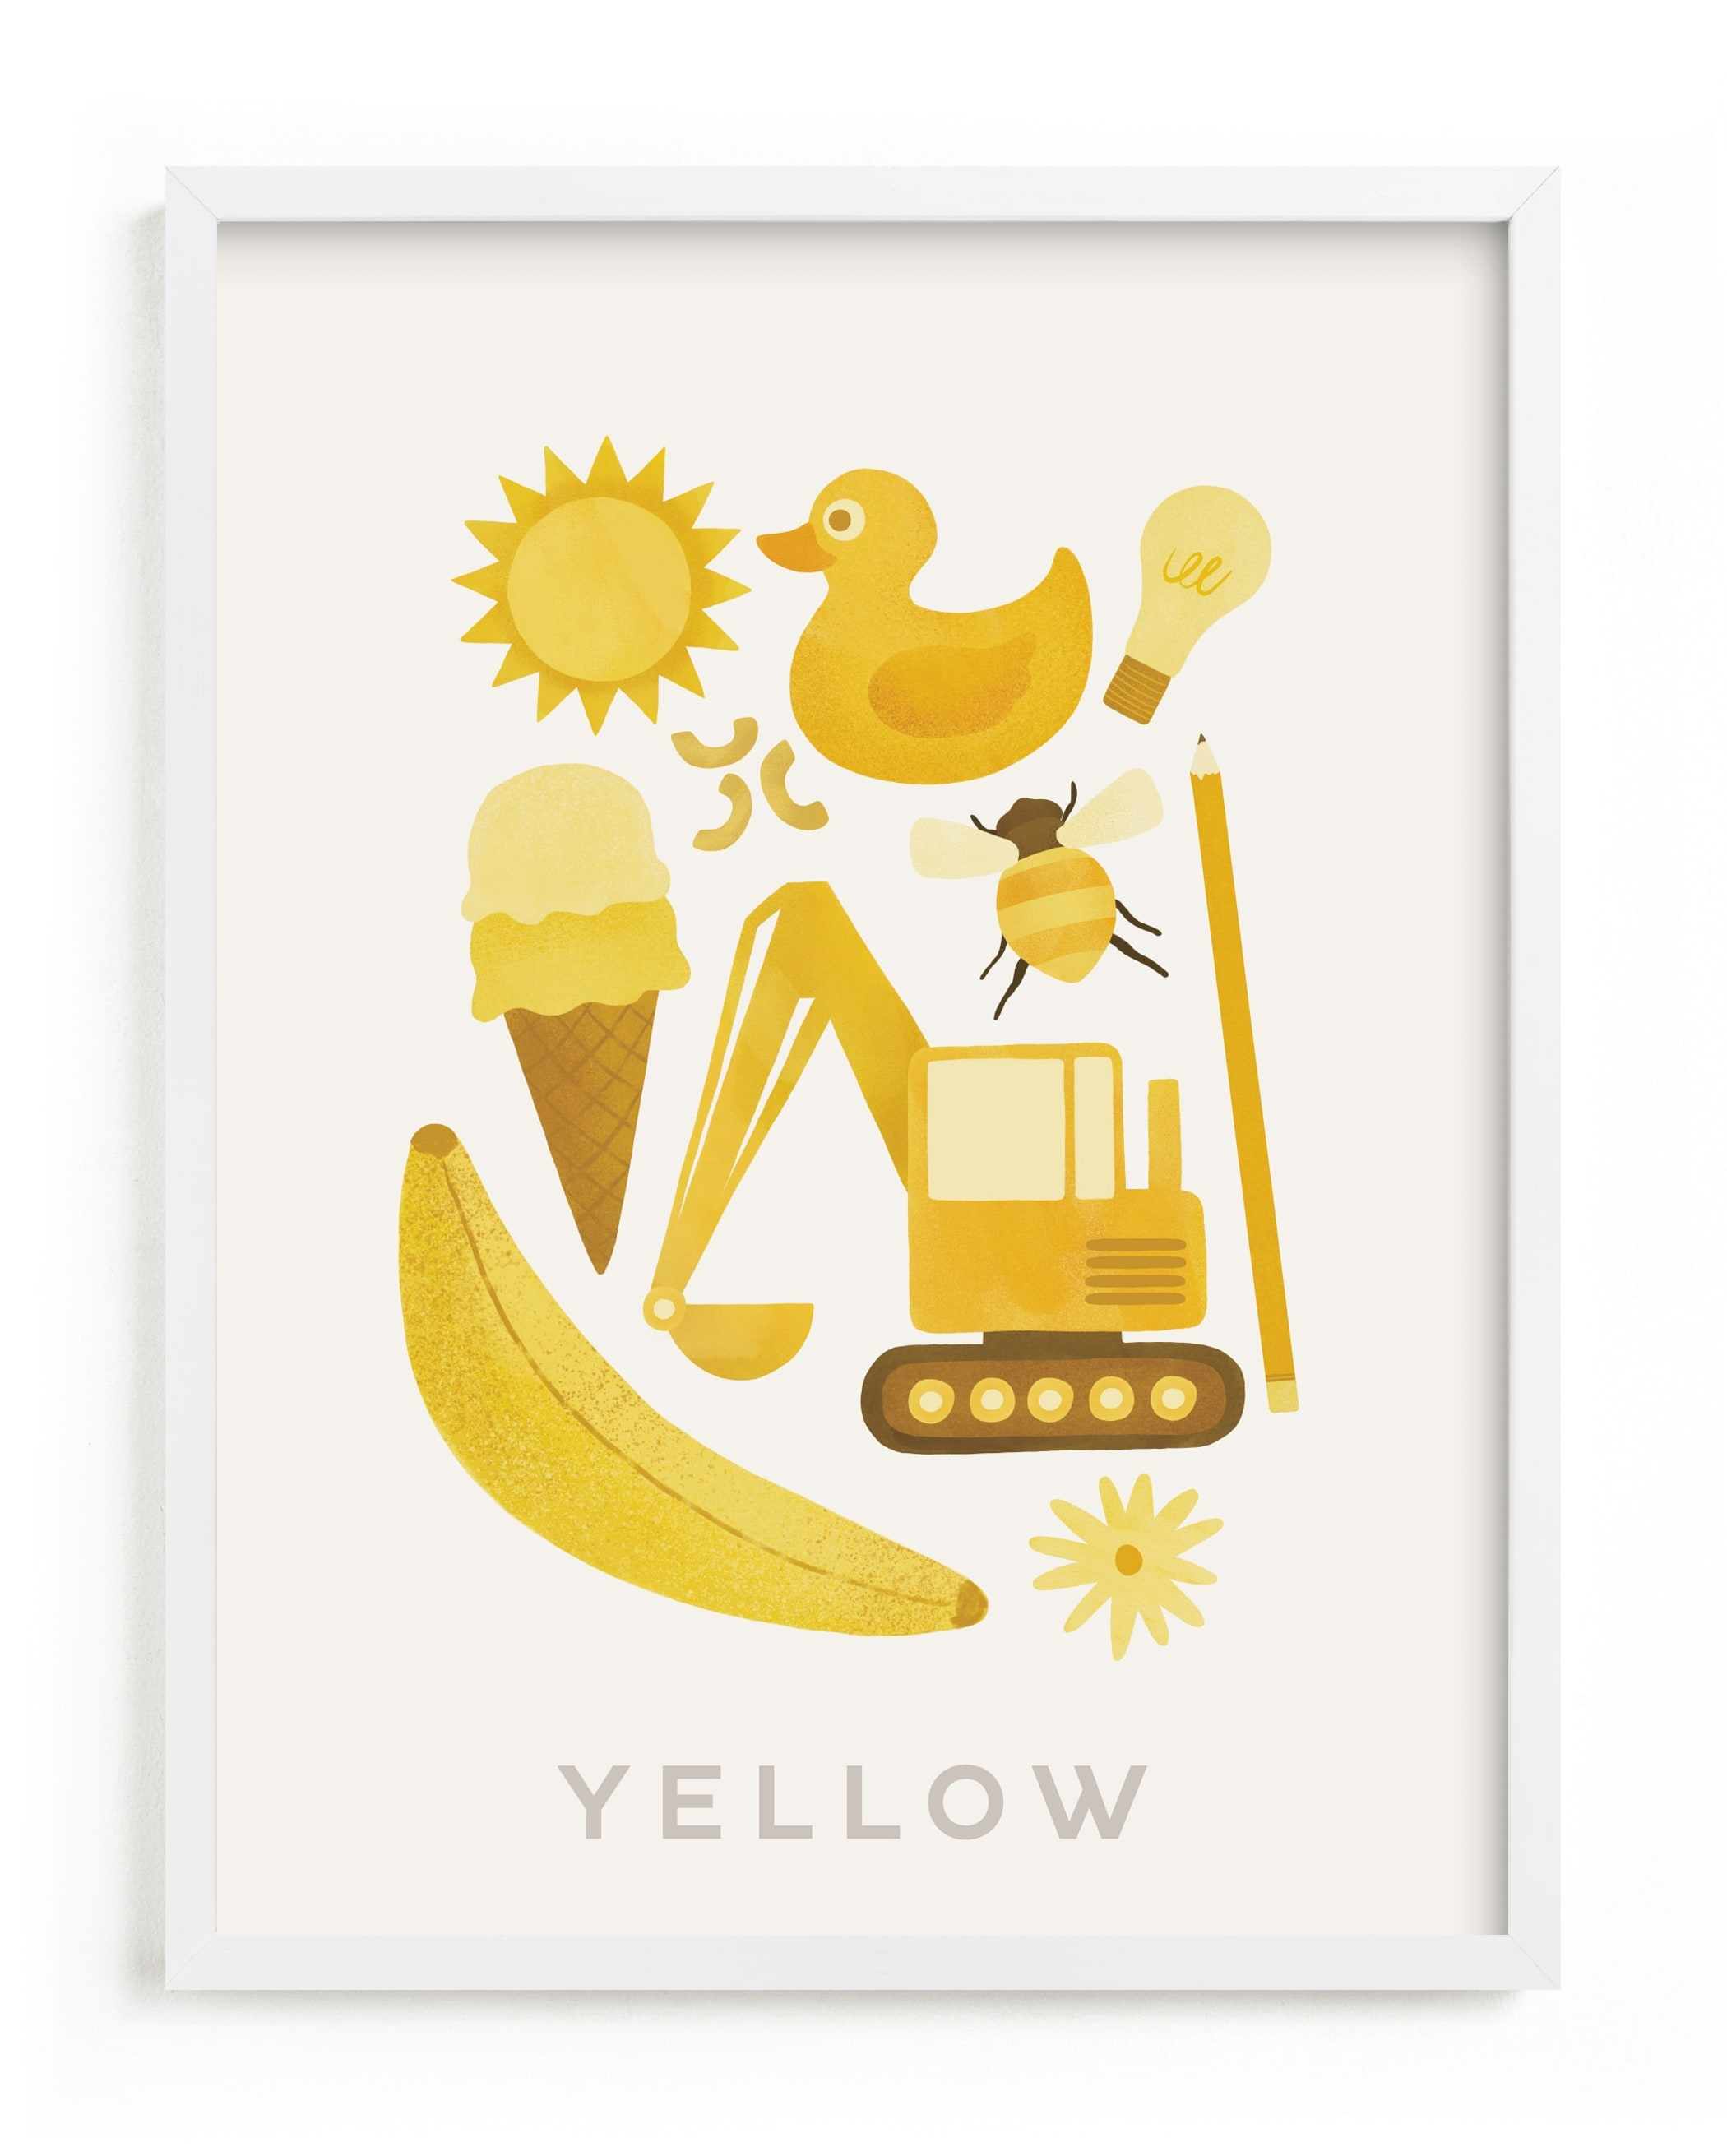 This is a yellow kids wall art by Ana Peake called Ten Yellow Things.